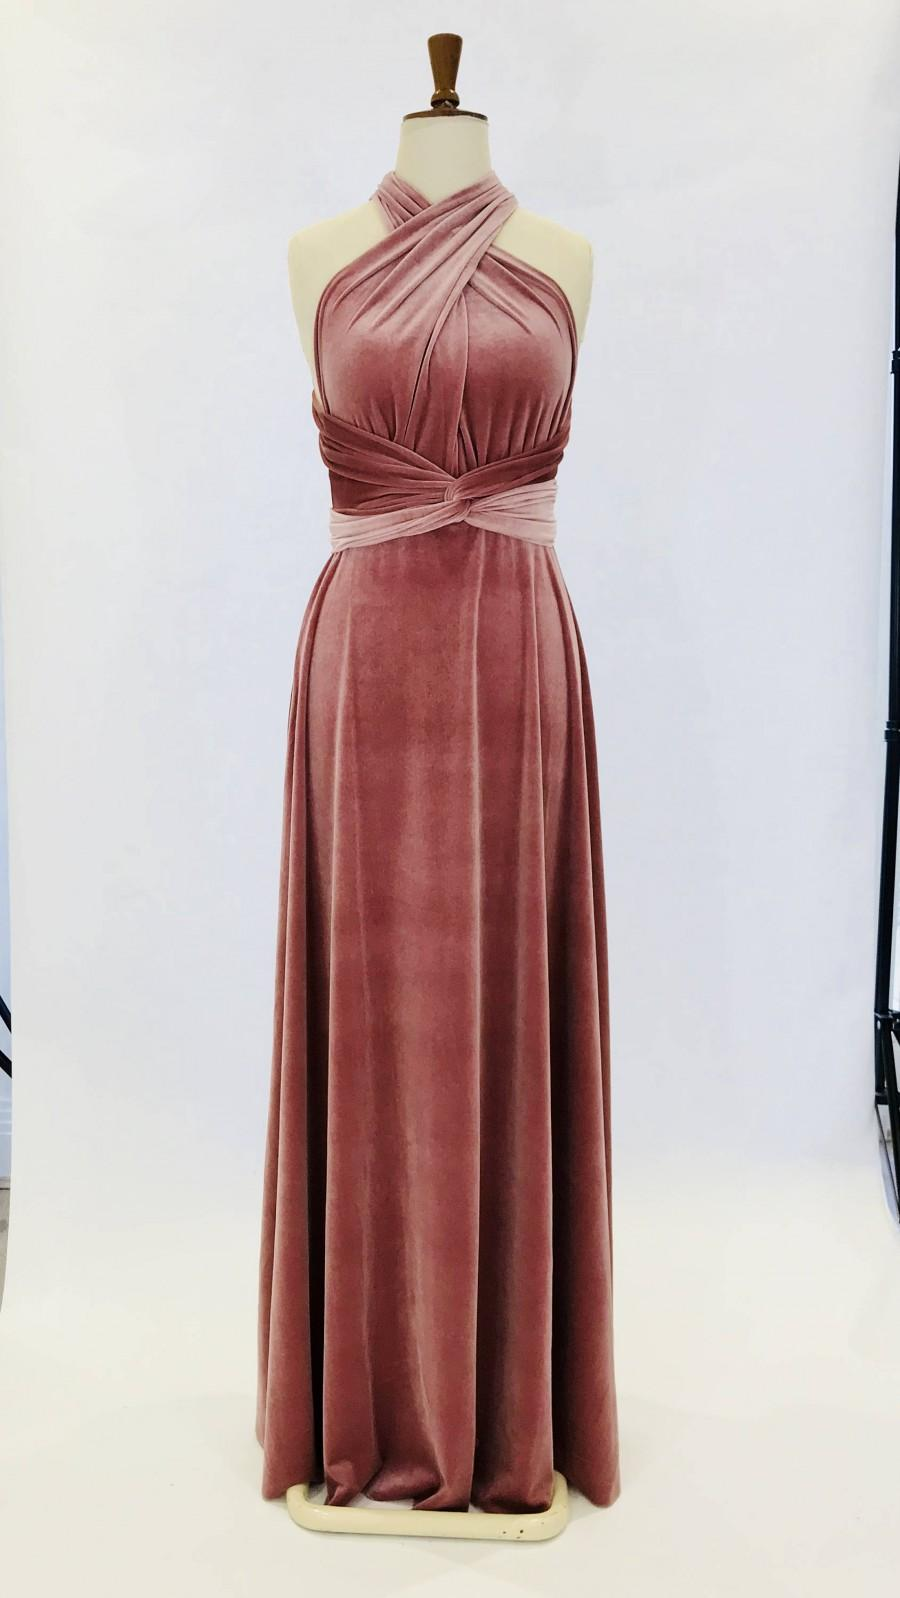 Hochzeit - Dusky pink velvet dress, infinity dress, bridesmaid dress, prom dress, ball gown, long dress, evening dress, convertible dress, party dress